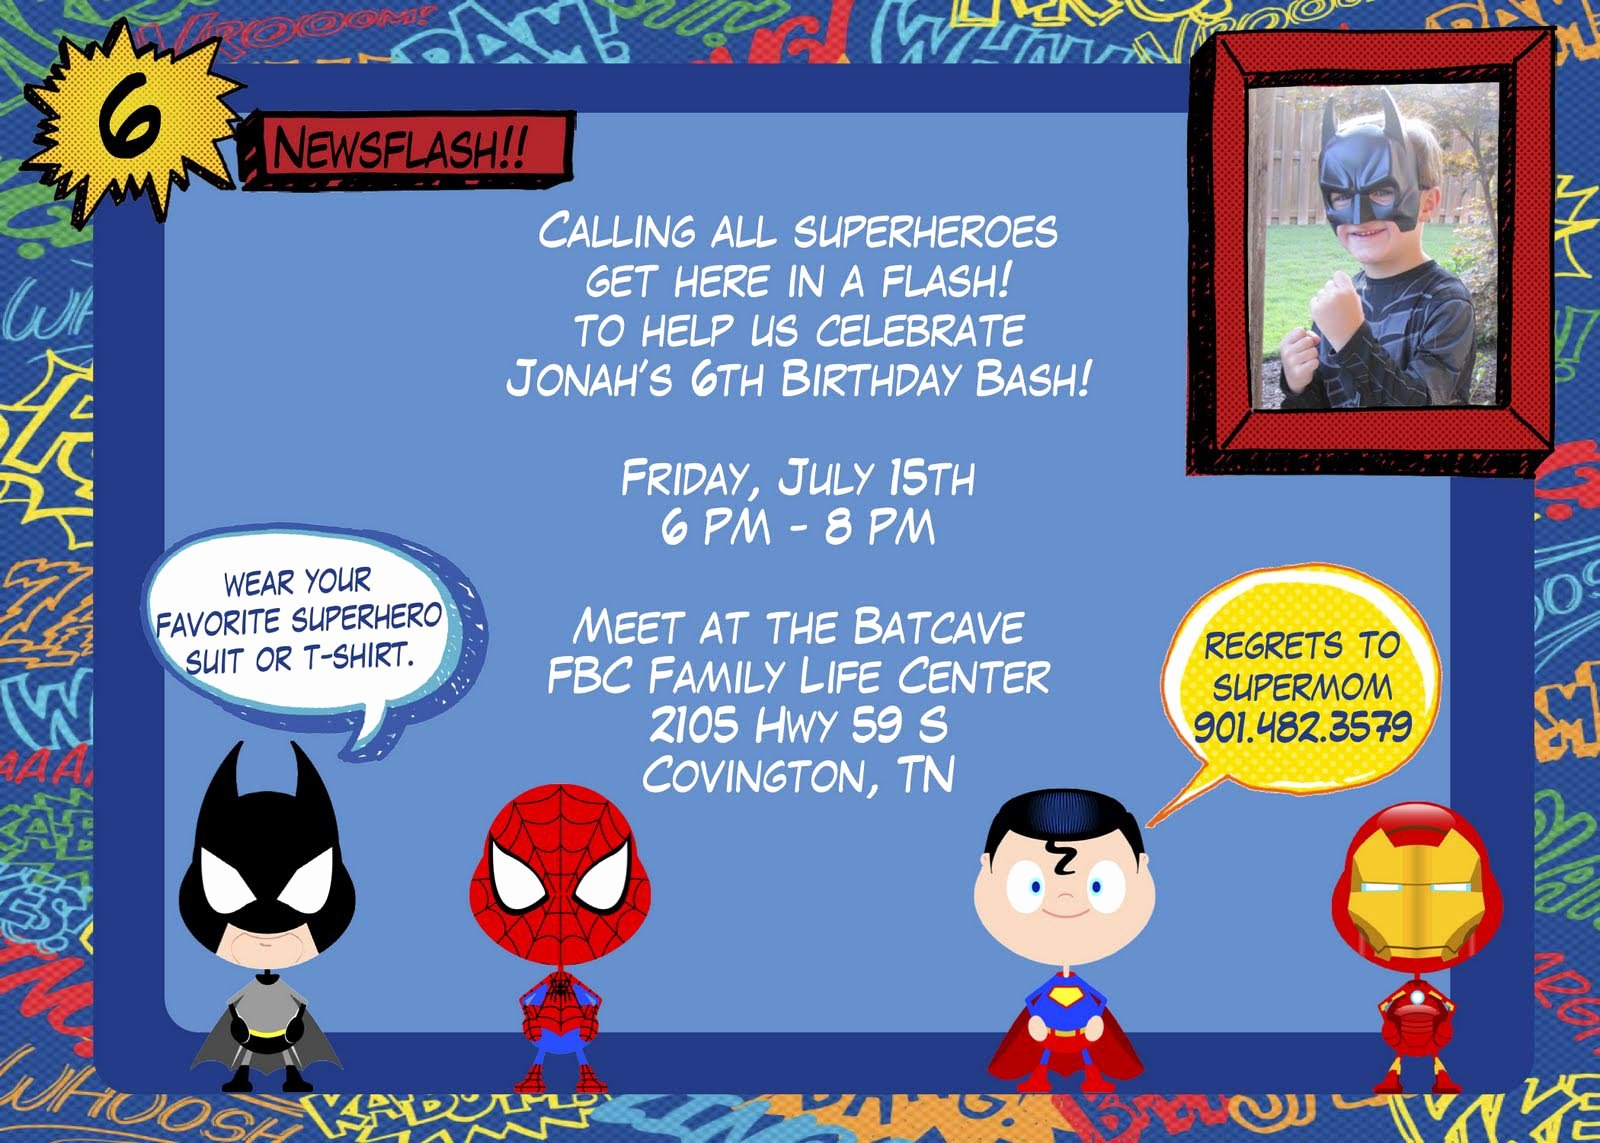 Superhero Birthday Invitations Templates Free Beautiful How to Arrange A Superhero Birthday Party